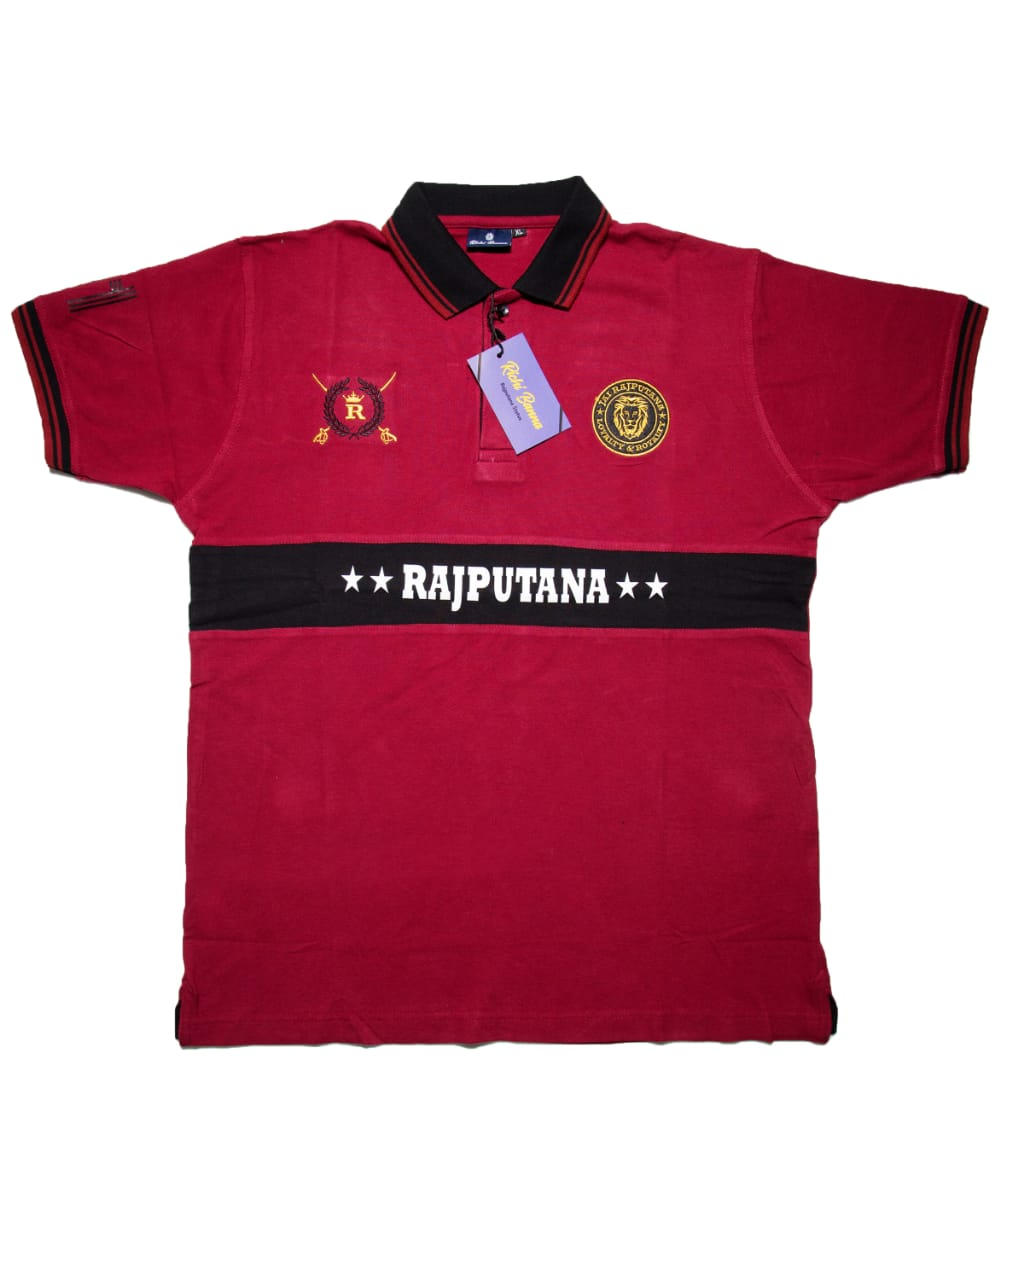 Dark Red Rajputana Polo T-Shirt